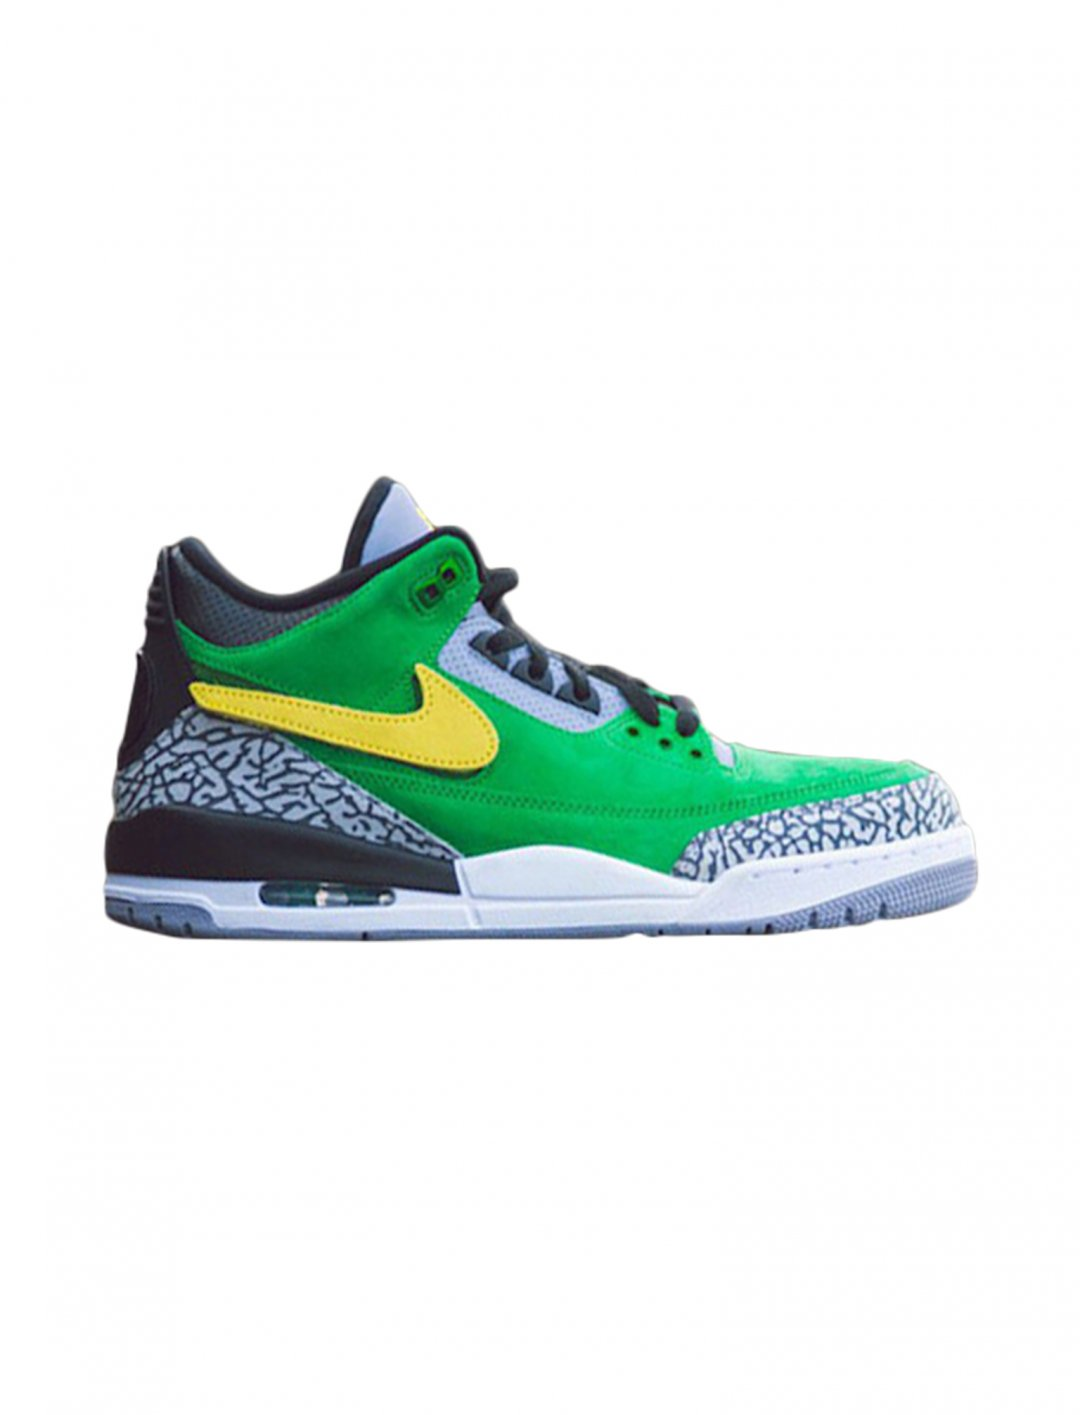 big sale 71ab2 07f89 DJ Khaled Sneakers, Air Jordan 3 Retro, Tinker Oregon Ducks